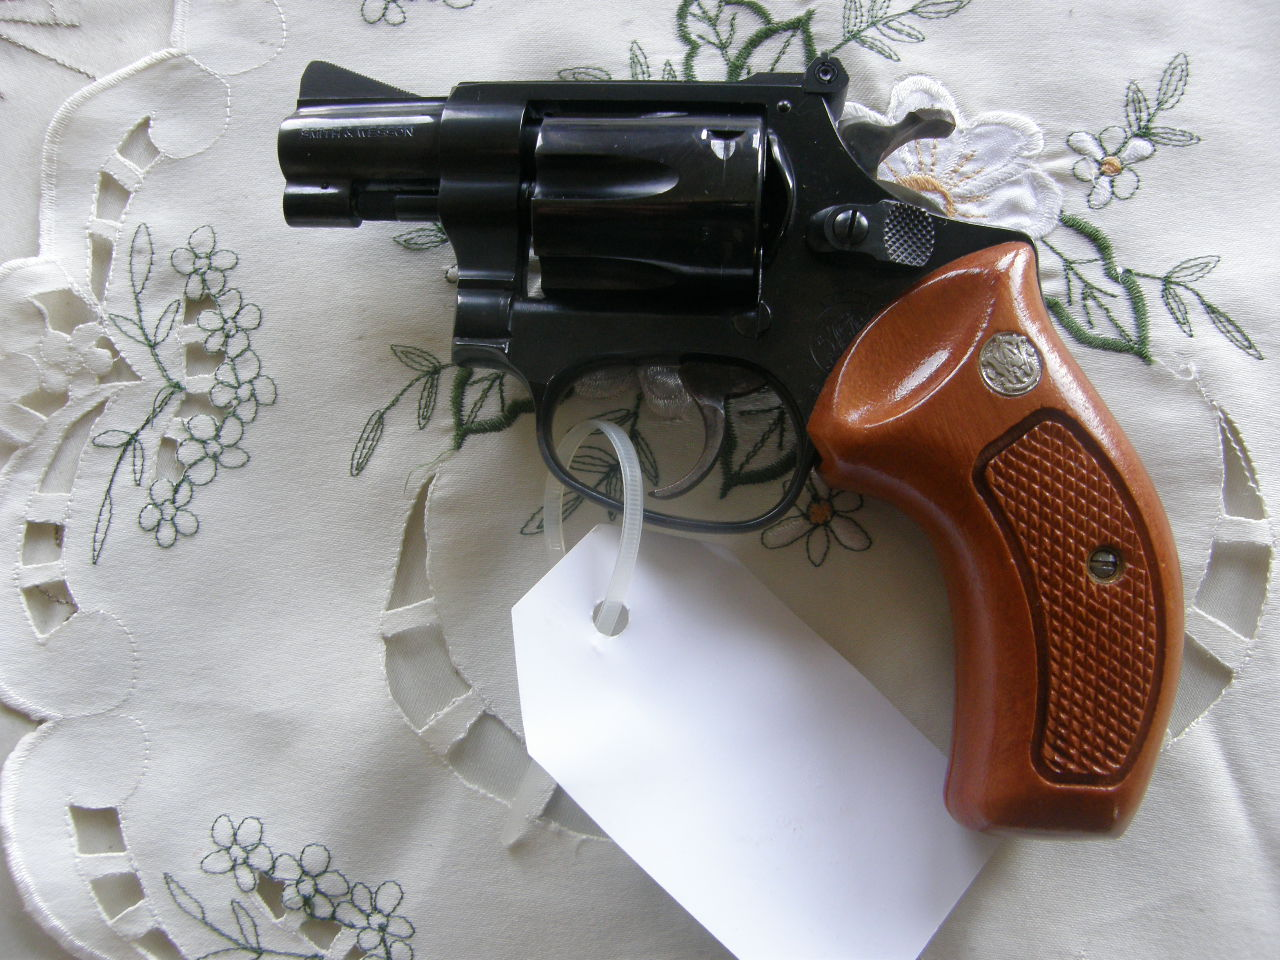 Revolver Smith Wesson Mod.34 v.č. BED 6891 r. 22 LR